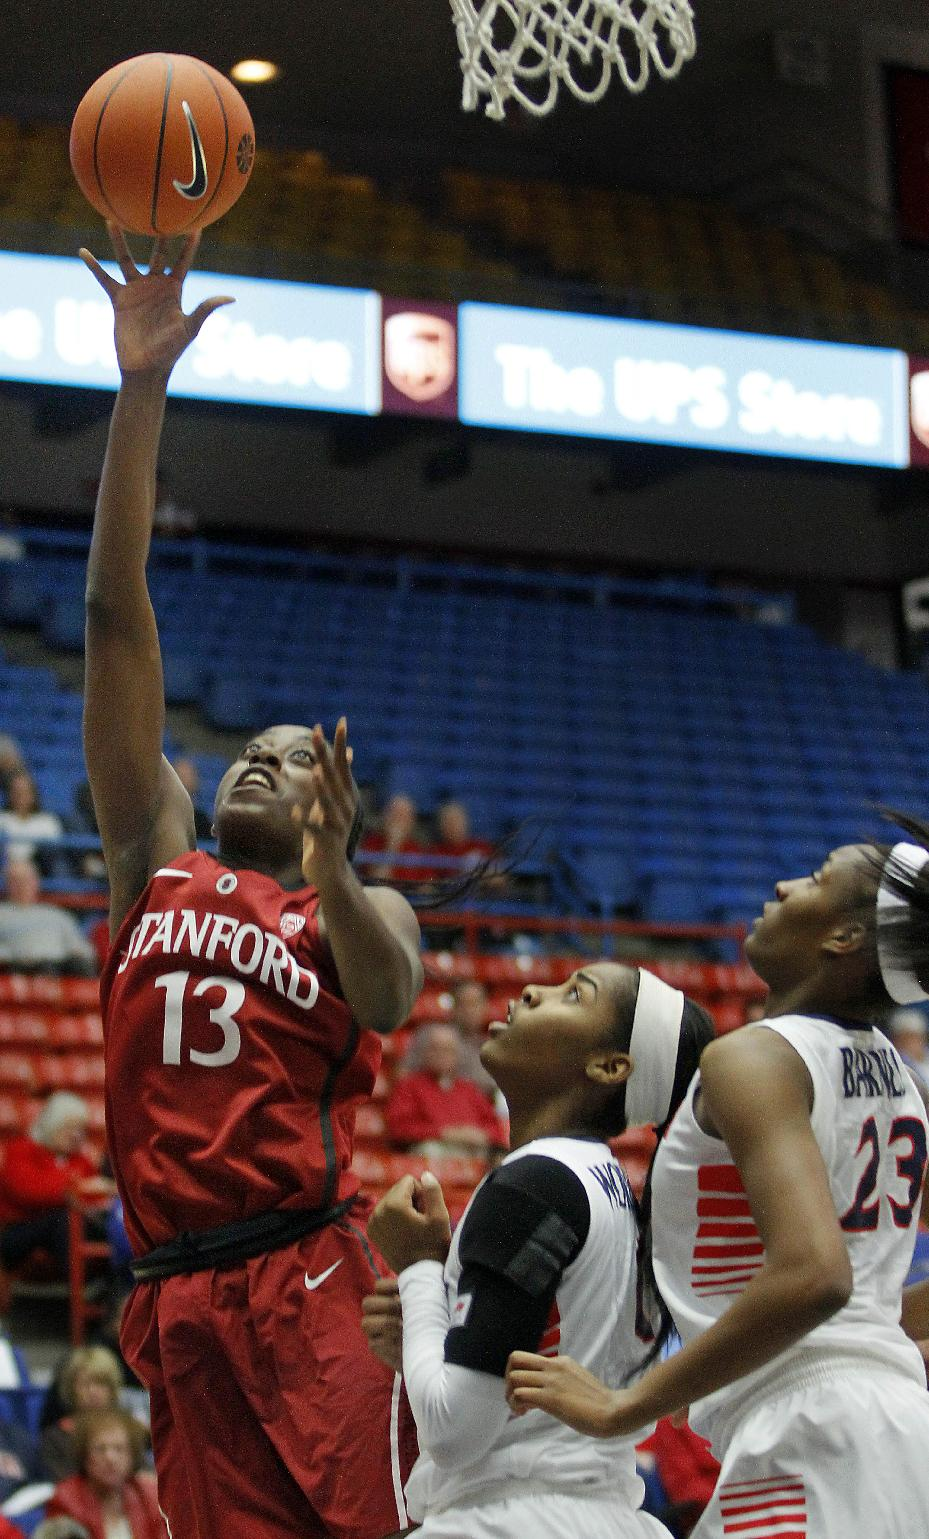 Stanford's Chiney Ogwumike (13) goes to the basket while Arizona's Breanna Workman, center, and Erica Barnes (23) watch in the first half of an NCAA college basketball game on Friday, Jan. 17, 2014, in Tucson, Ariz